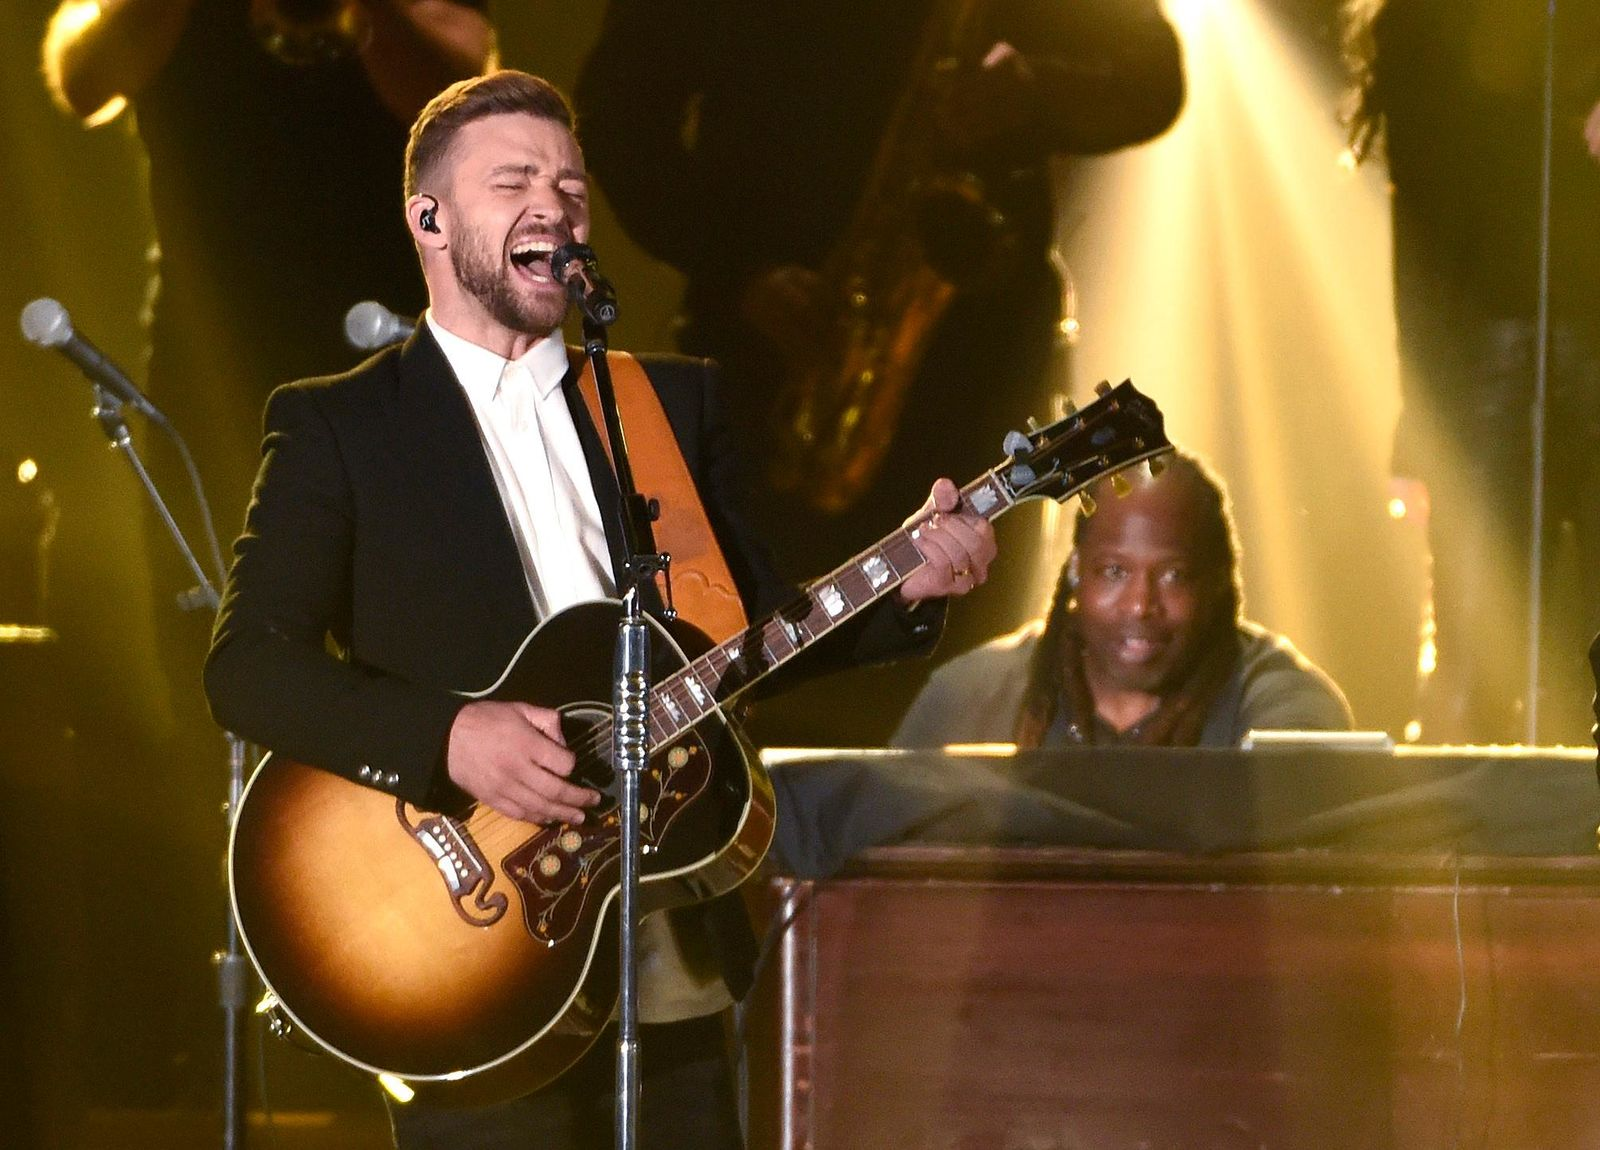 FILE - In this Nov. 4, 2015 file photo, Justin Timberlake performs at the 49th annual CMA Awards in Nashville, Tenn. (Photo by Chris Pizzello/Invision/AP, File)